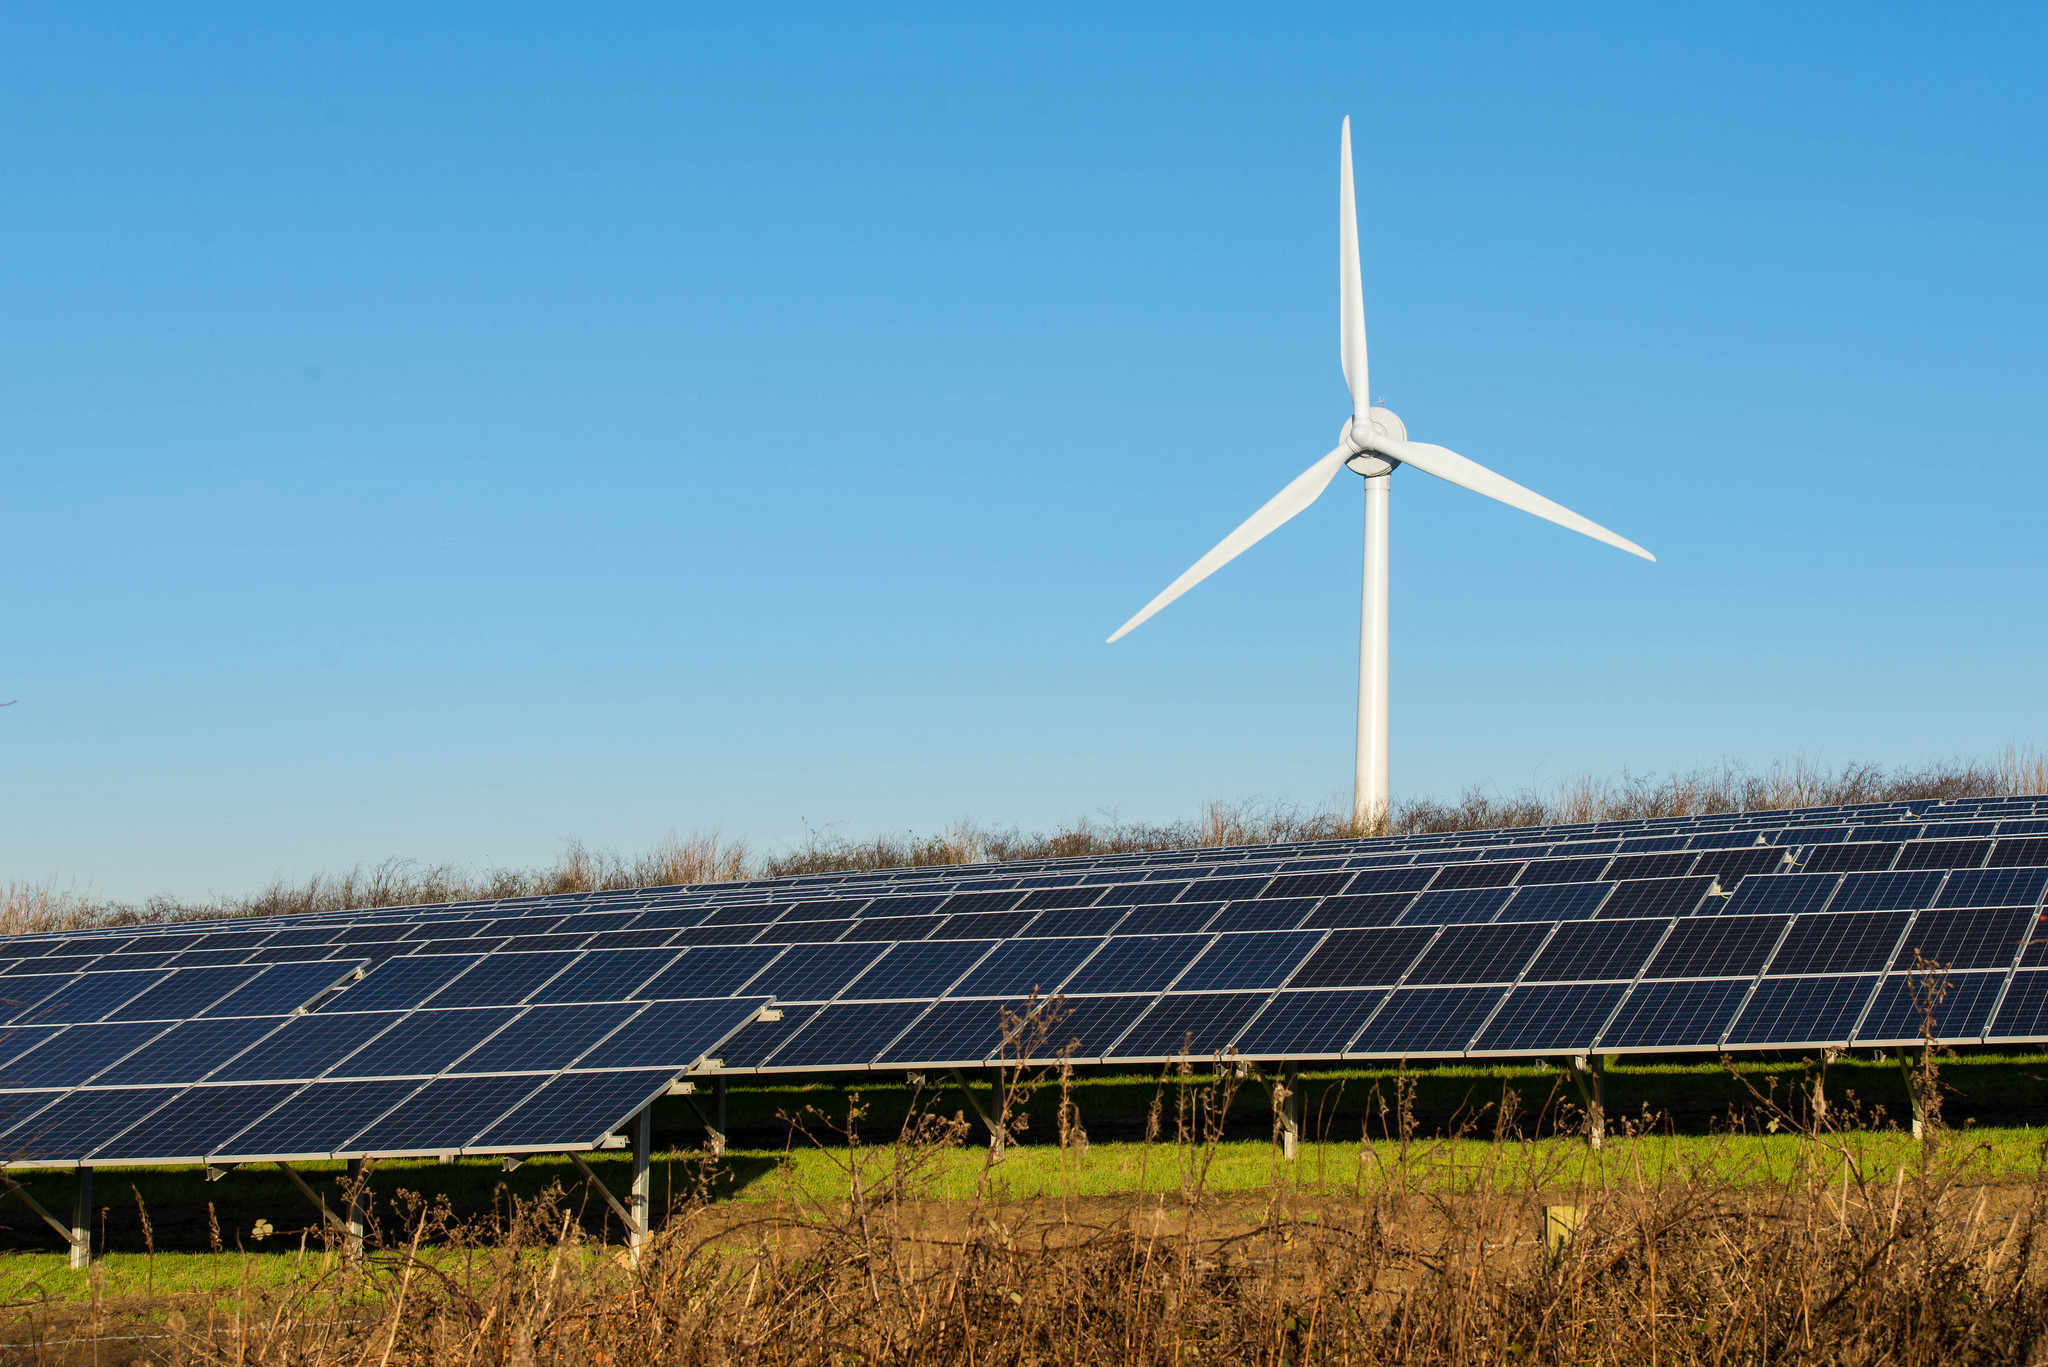 The wind-solar hybrid project is expected to be completed in January 2018. Image: Gerry Machen / Flickr